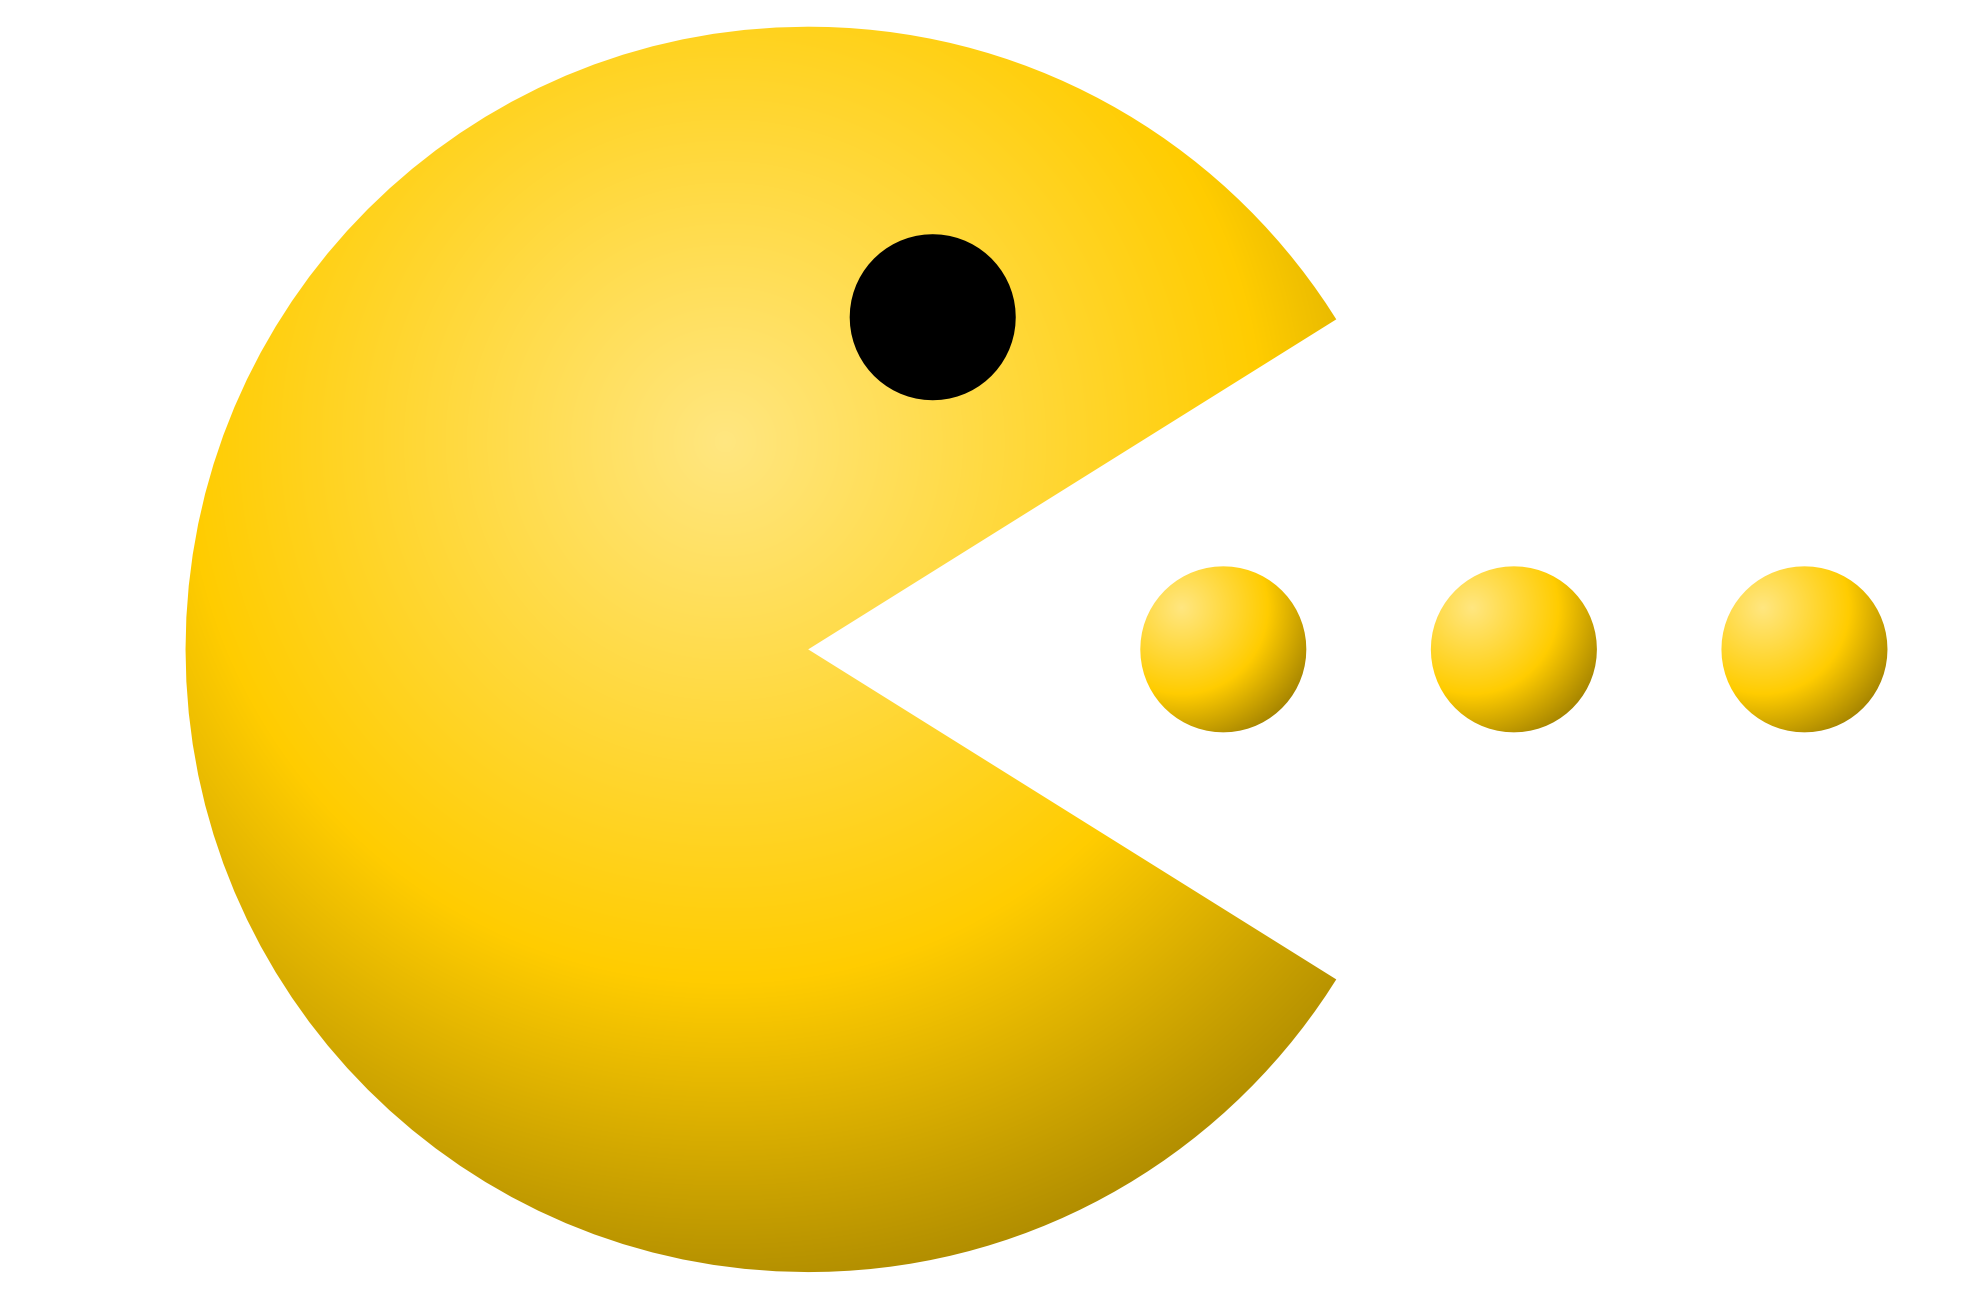 High-quality Pacman Cliparts For Free! image #25180